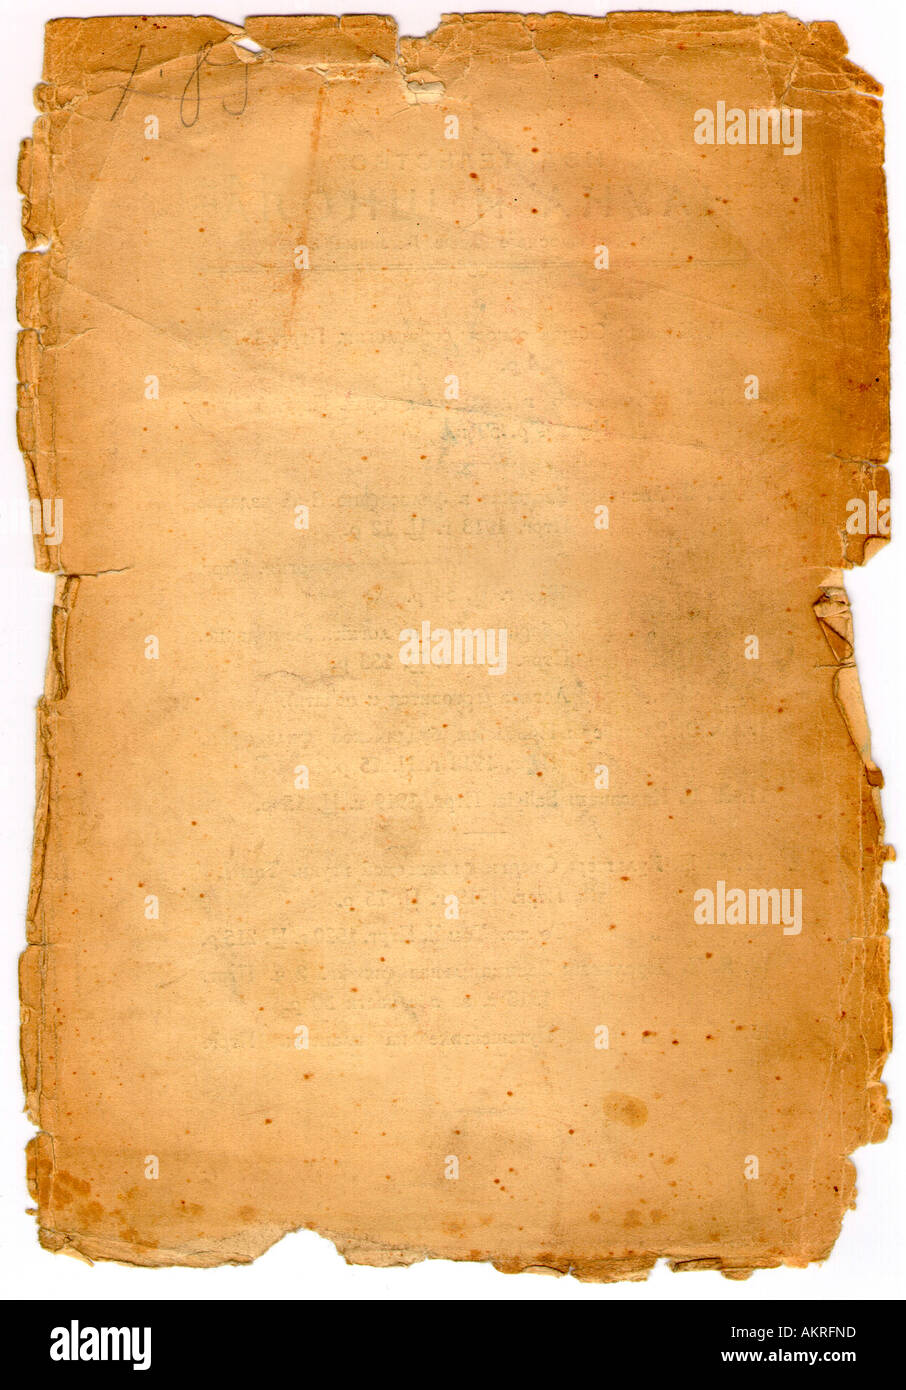 Blank Old Paper Background - Stock Image